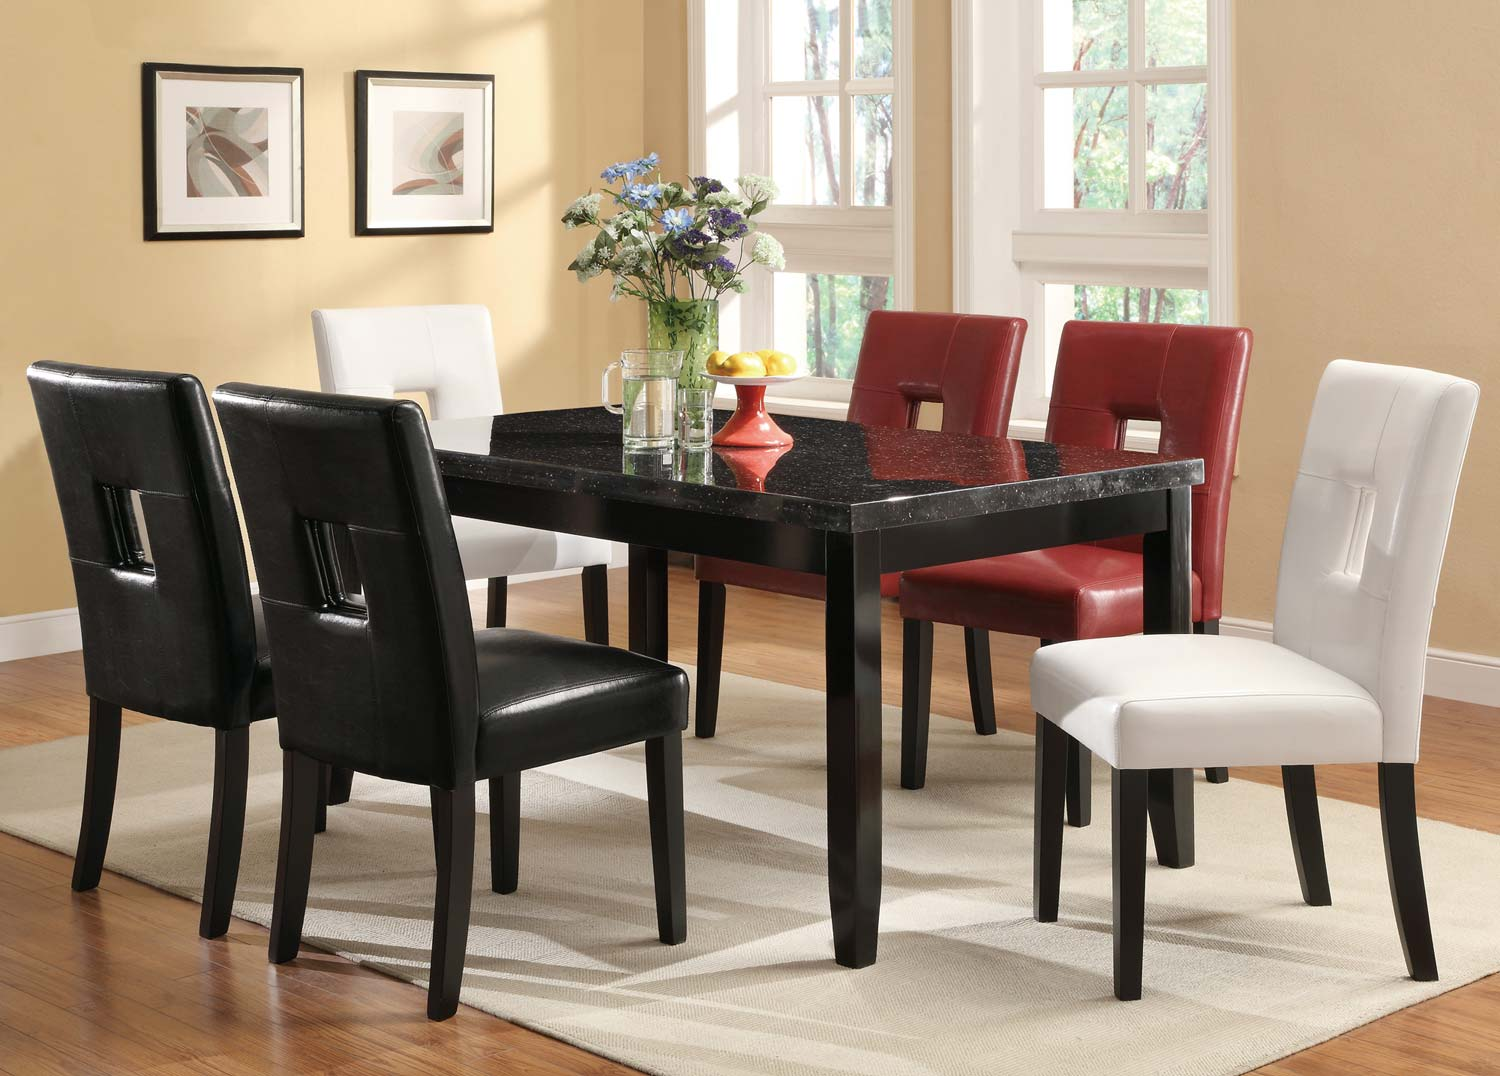 Coaster Newbridge Dining Set - Cappuccino